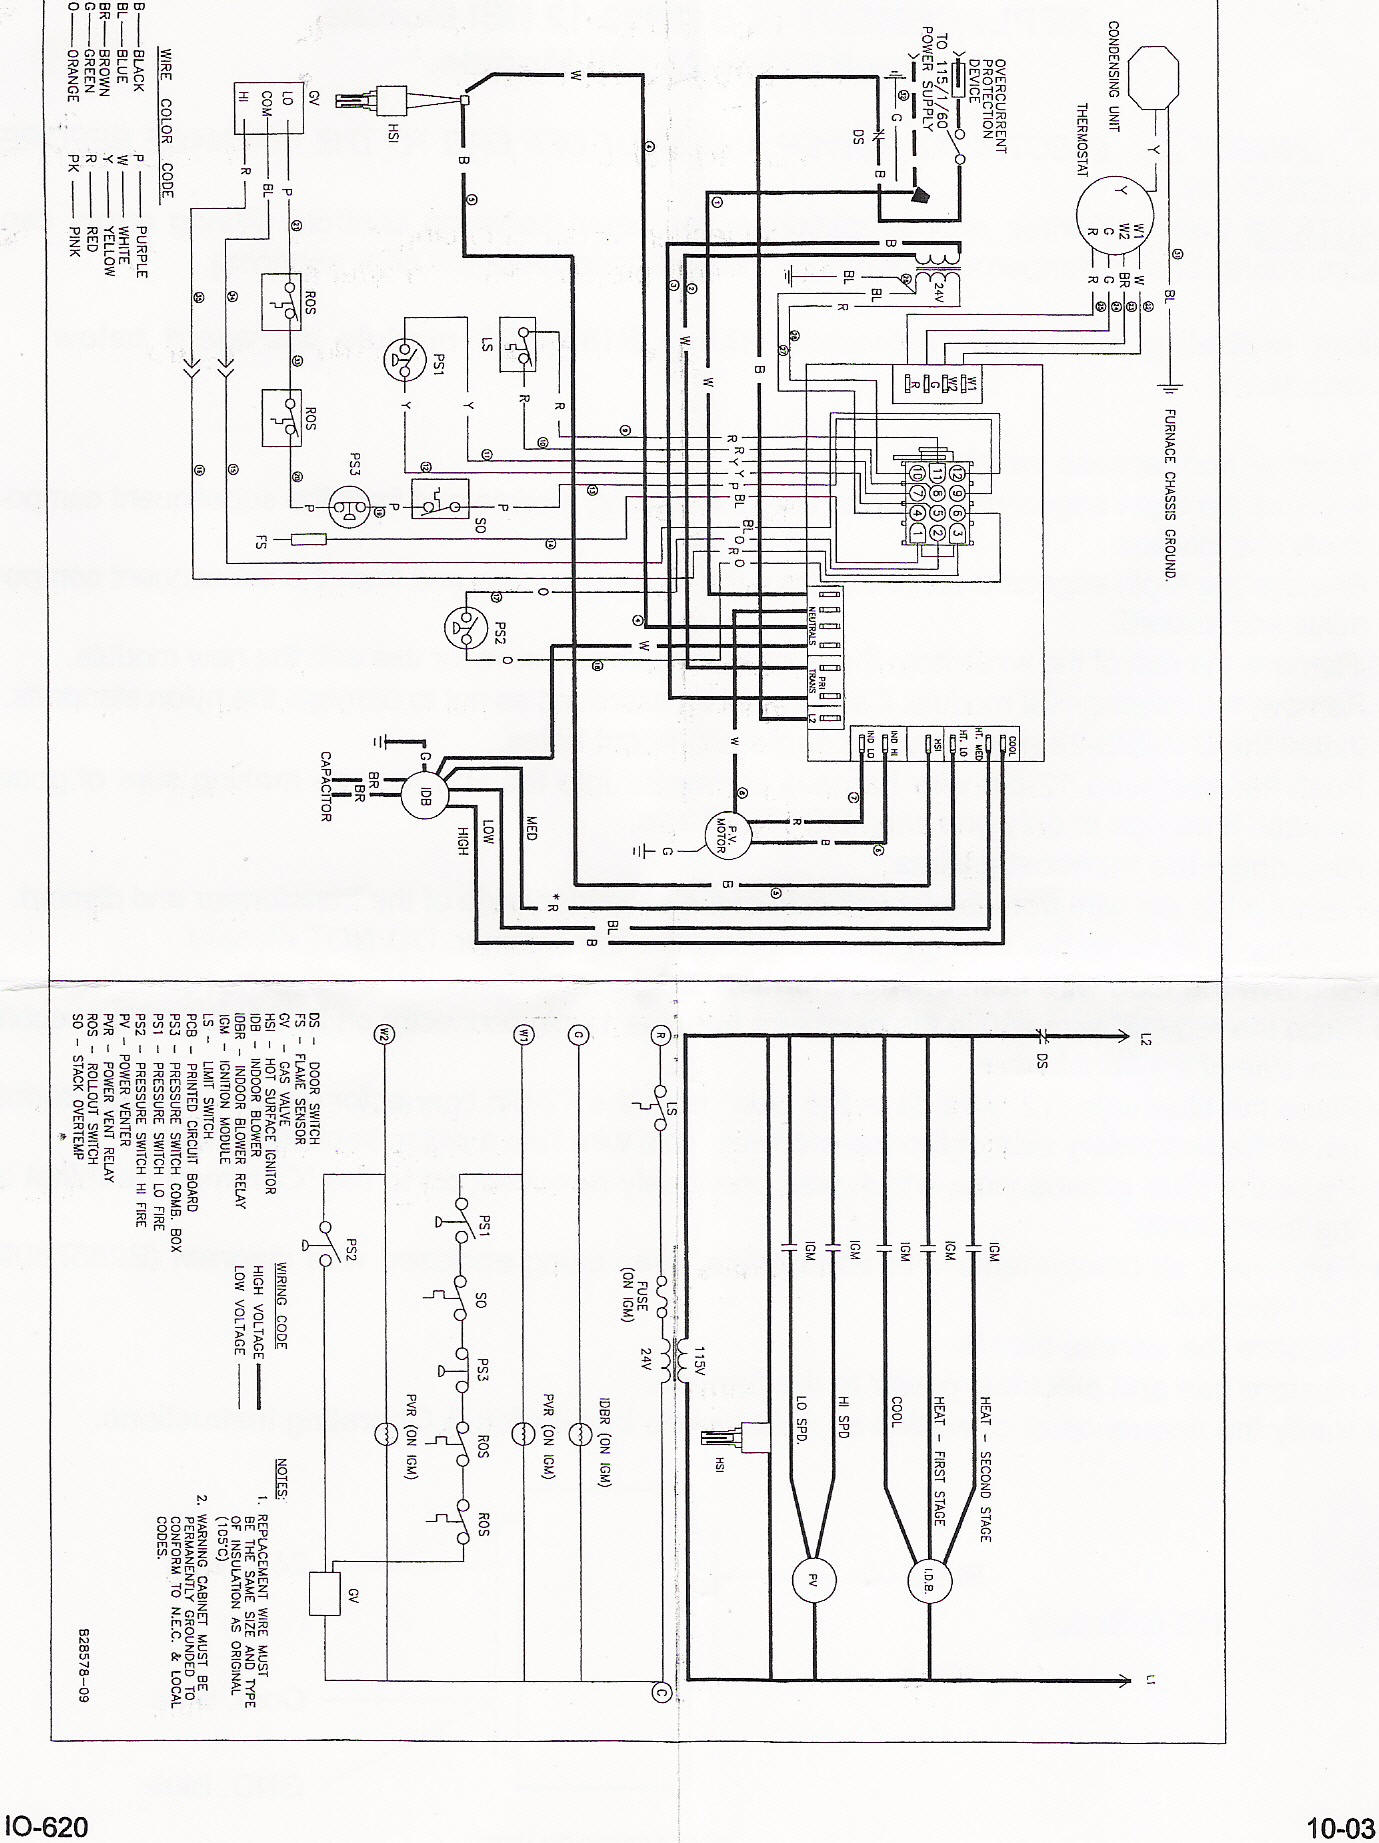 goodma2 instr goodman control board b18099 23 instructions trane economizer wiring diagram at gsmx.co